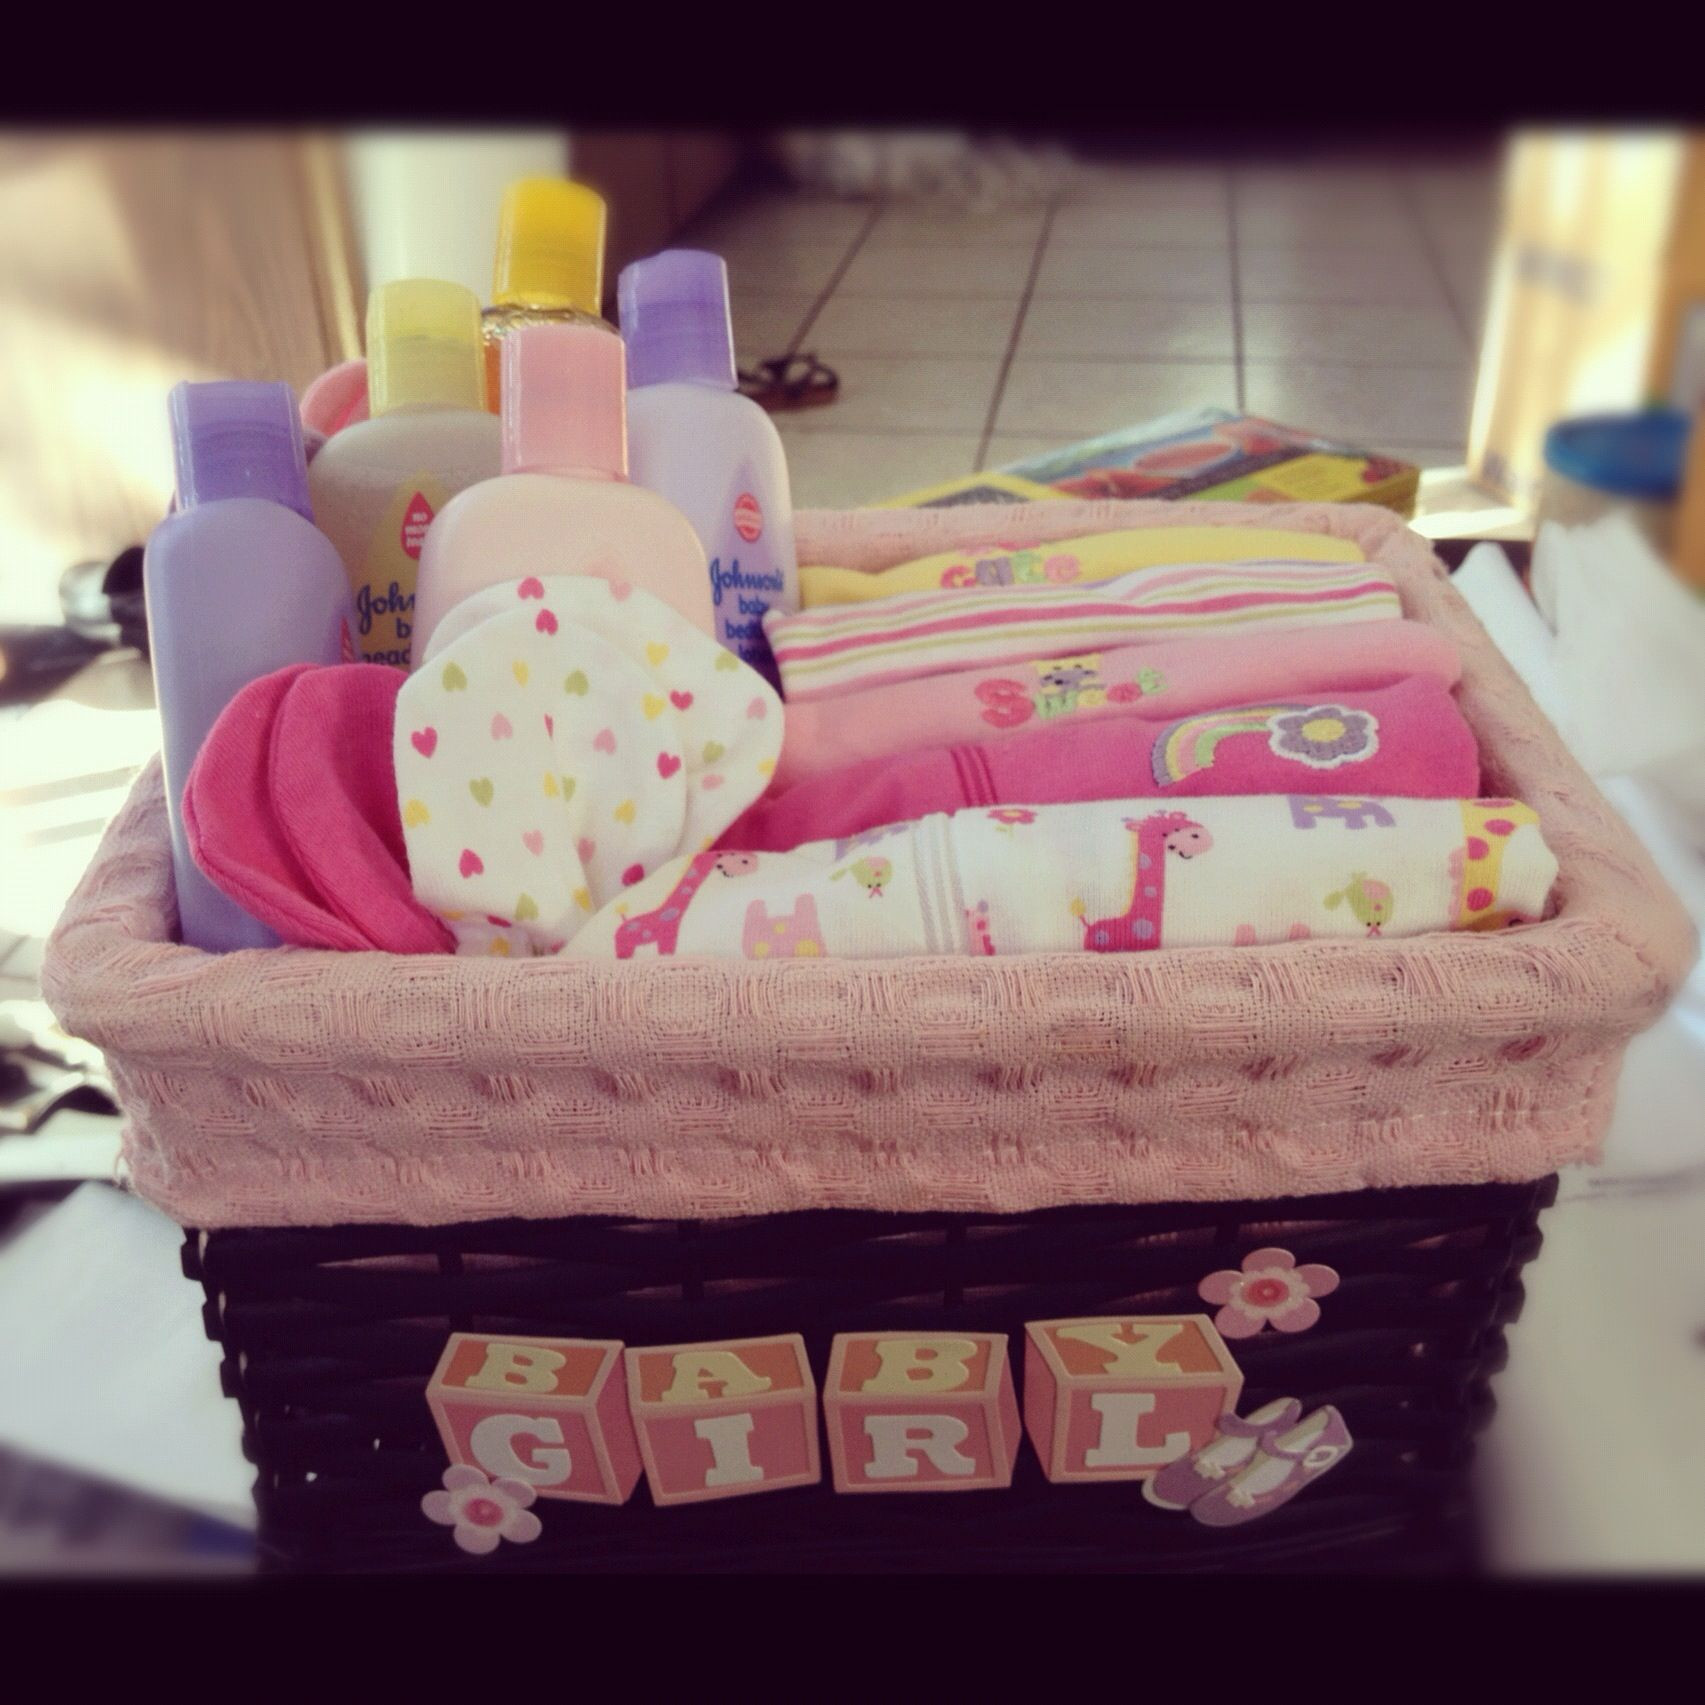 Best ideas about DIY Baby Gift Baskets . Save or Pin DIY Baby Shower Gift Basket Ideas for Girls Now.